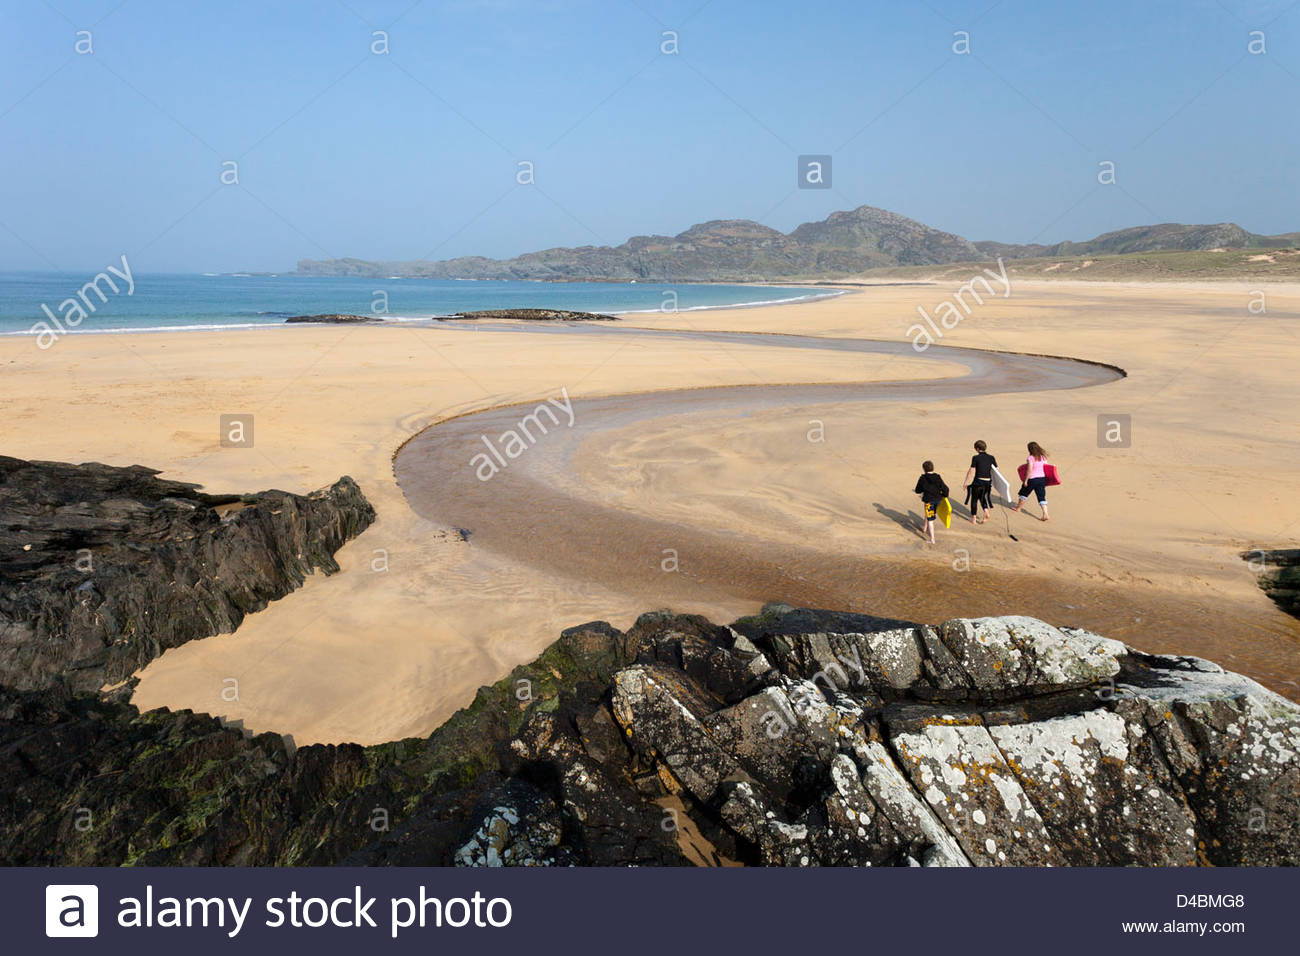 Three children with bodyboards walk across the beach at Kiloran Bay on the Isle of Colonsay, Inner Hebrides, Scotland - Stock Image